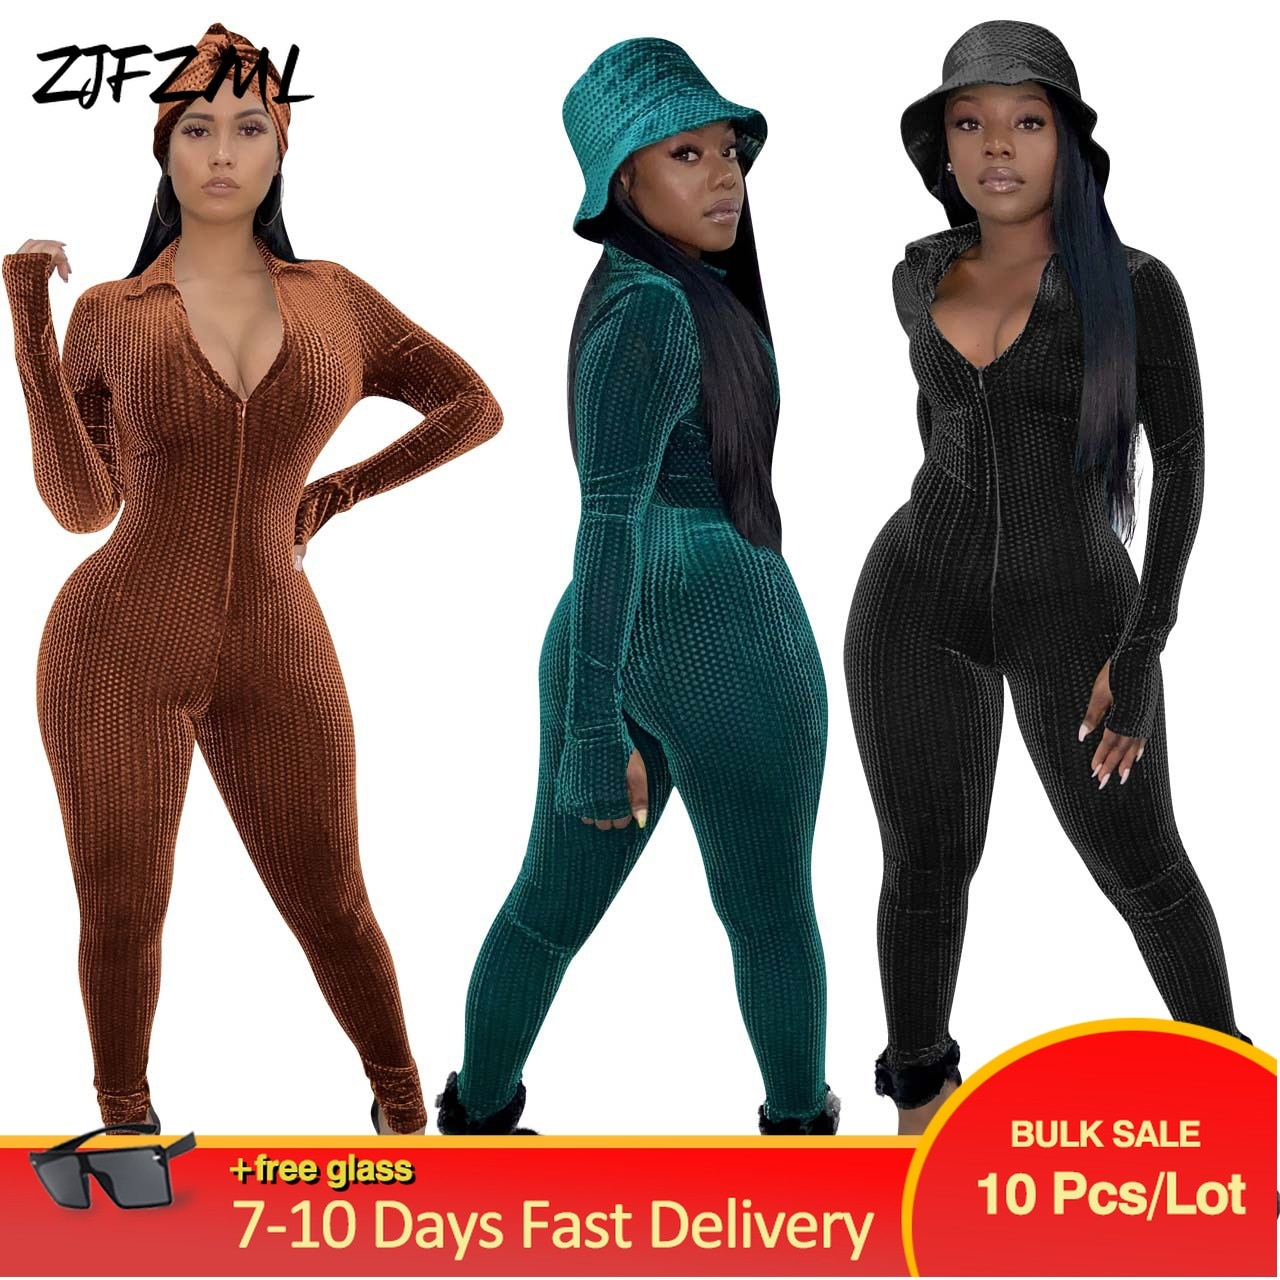 Bulk Wholesale Items Lots Velvet One Piece Club Overall for Women Retro Deep V Neck Long Sleeve Romper Sexy Zipper Skinny Outfit